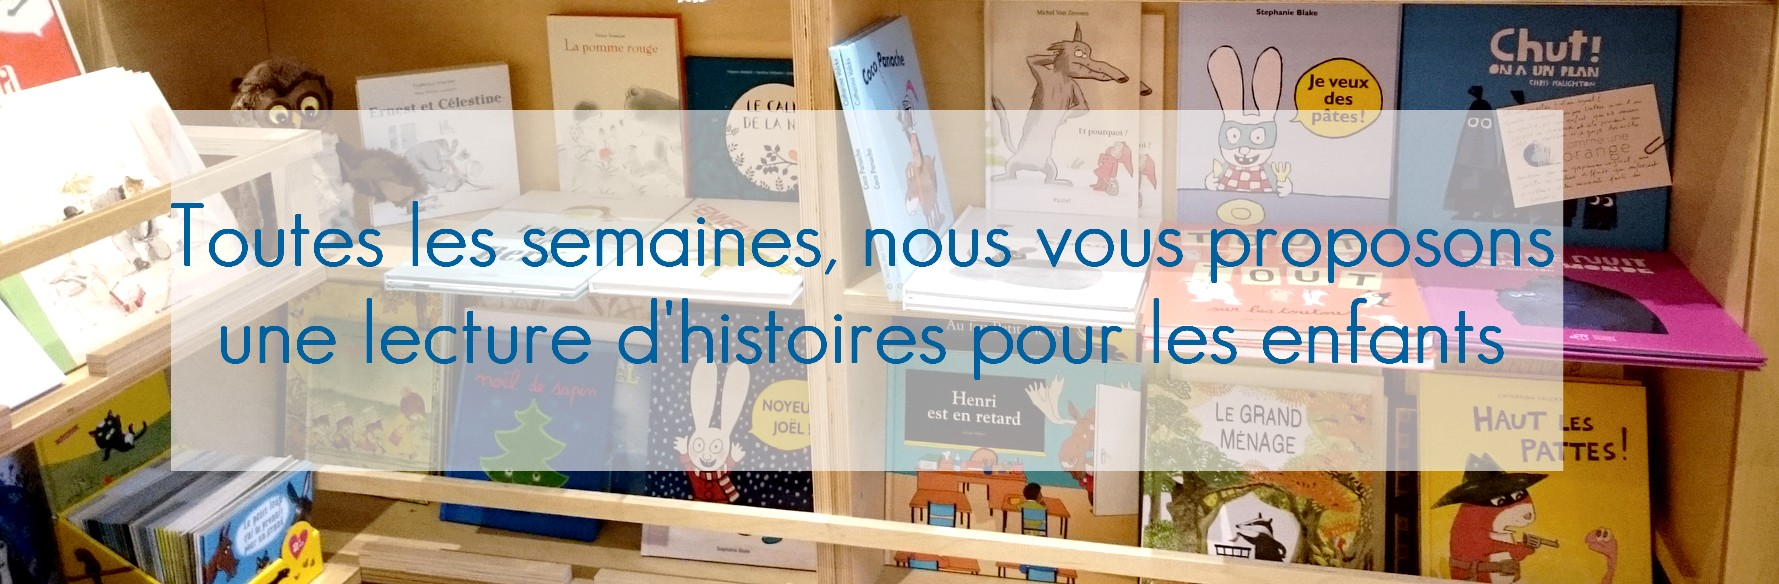 Les animations Librairie quarier champerret Pereire Terne Maillot